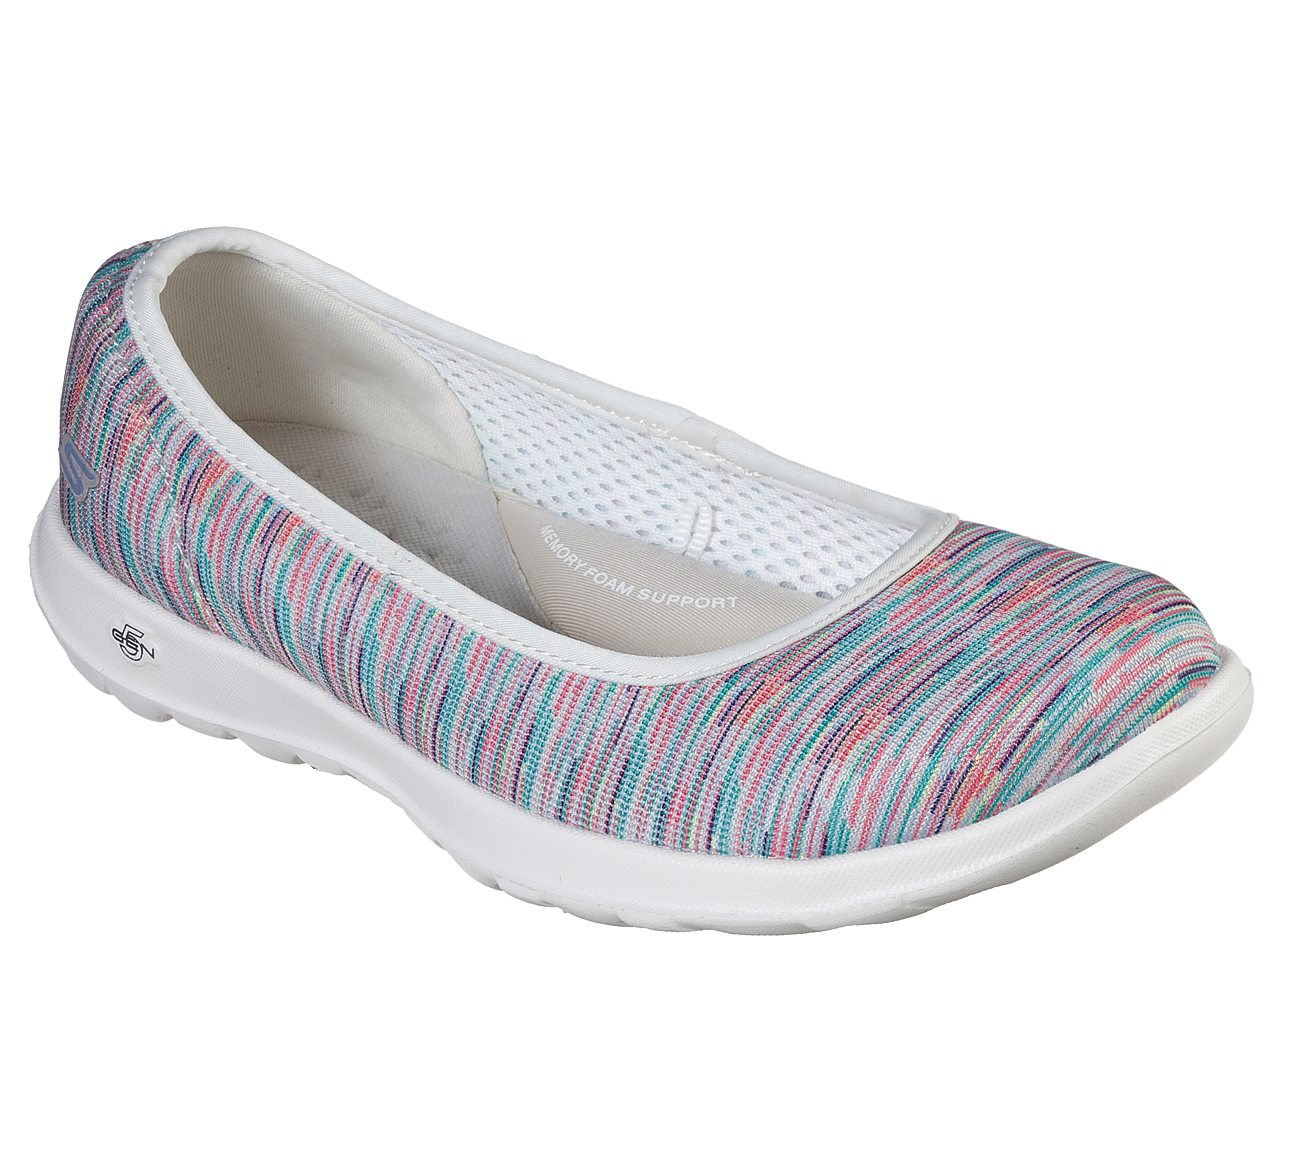 Skechers GOwalk Lite - Bright